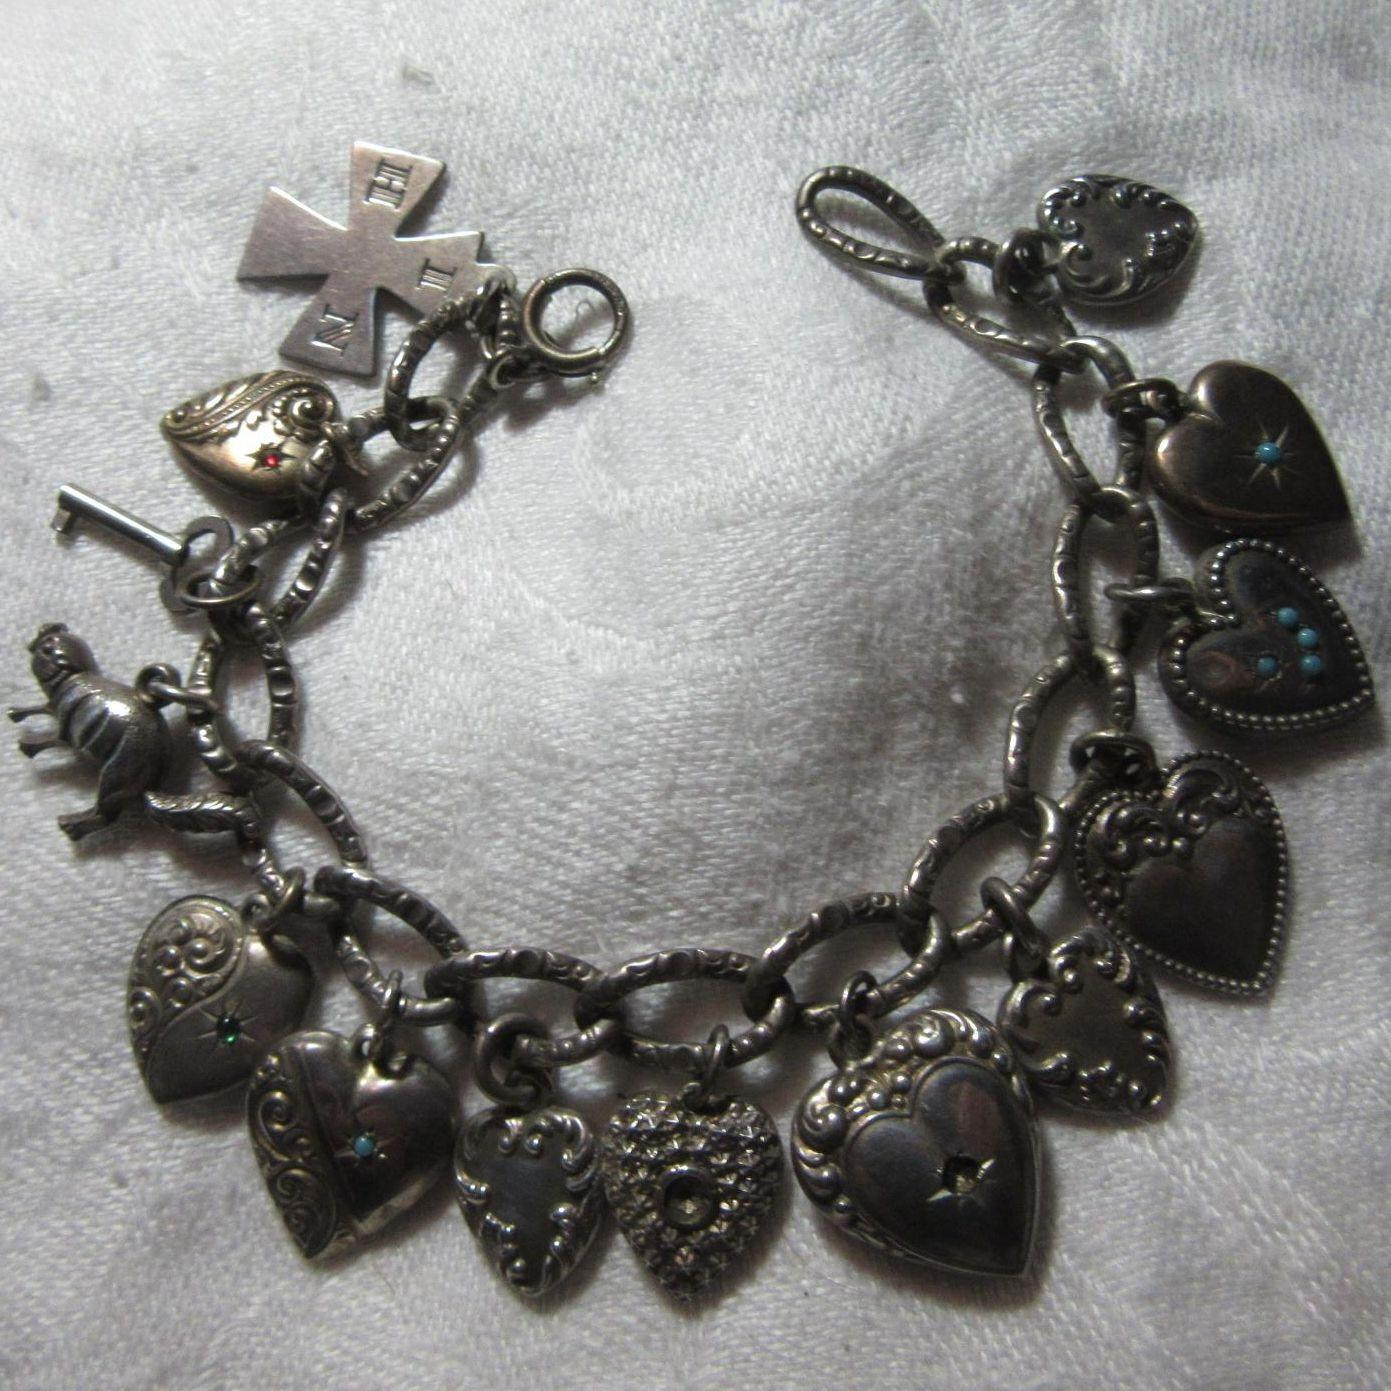 Sterling Charm Bracelet With 14 Hearts & Charms